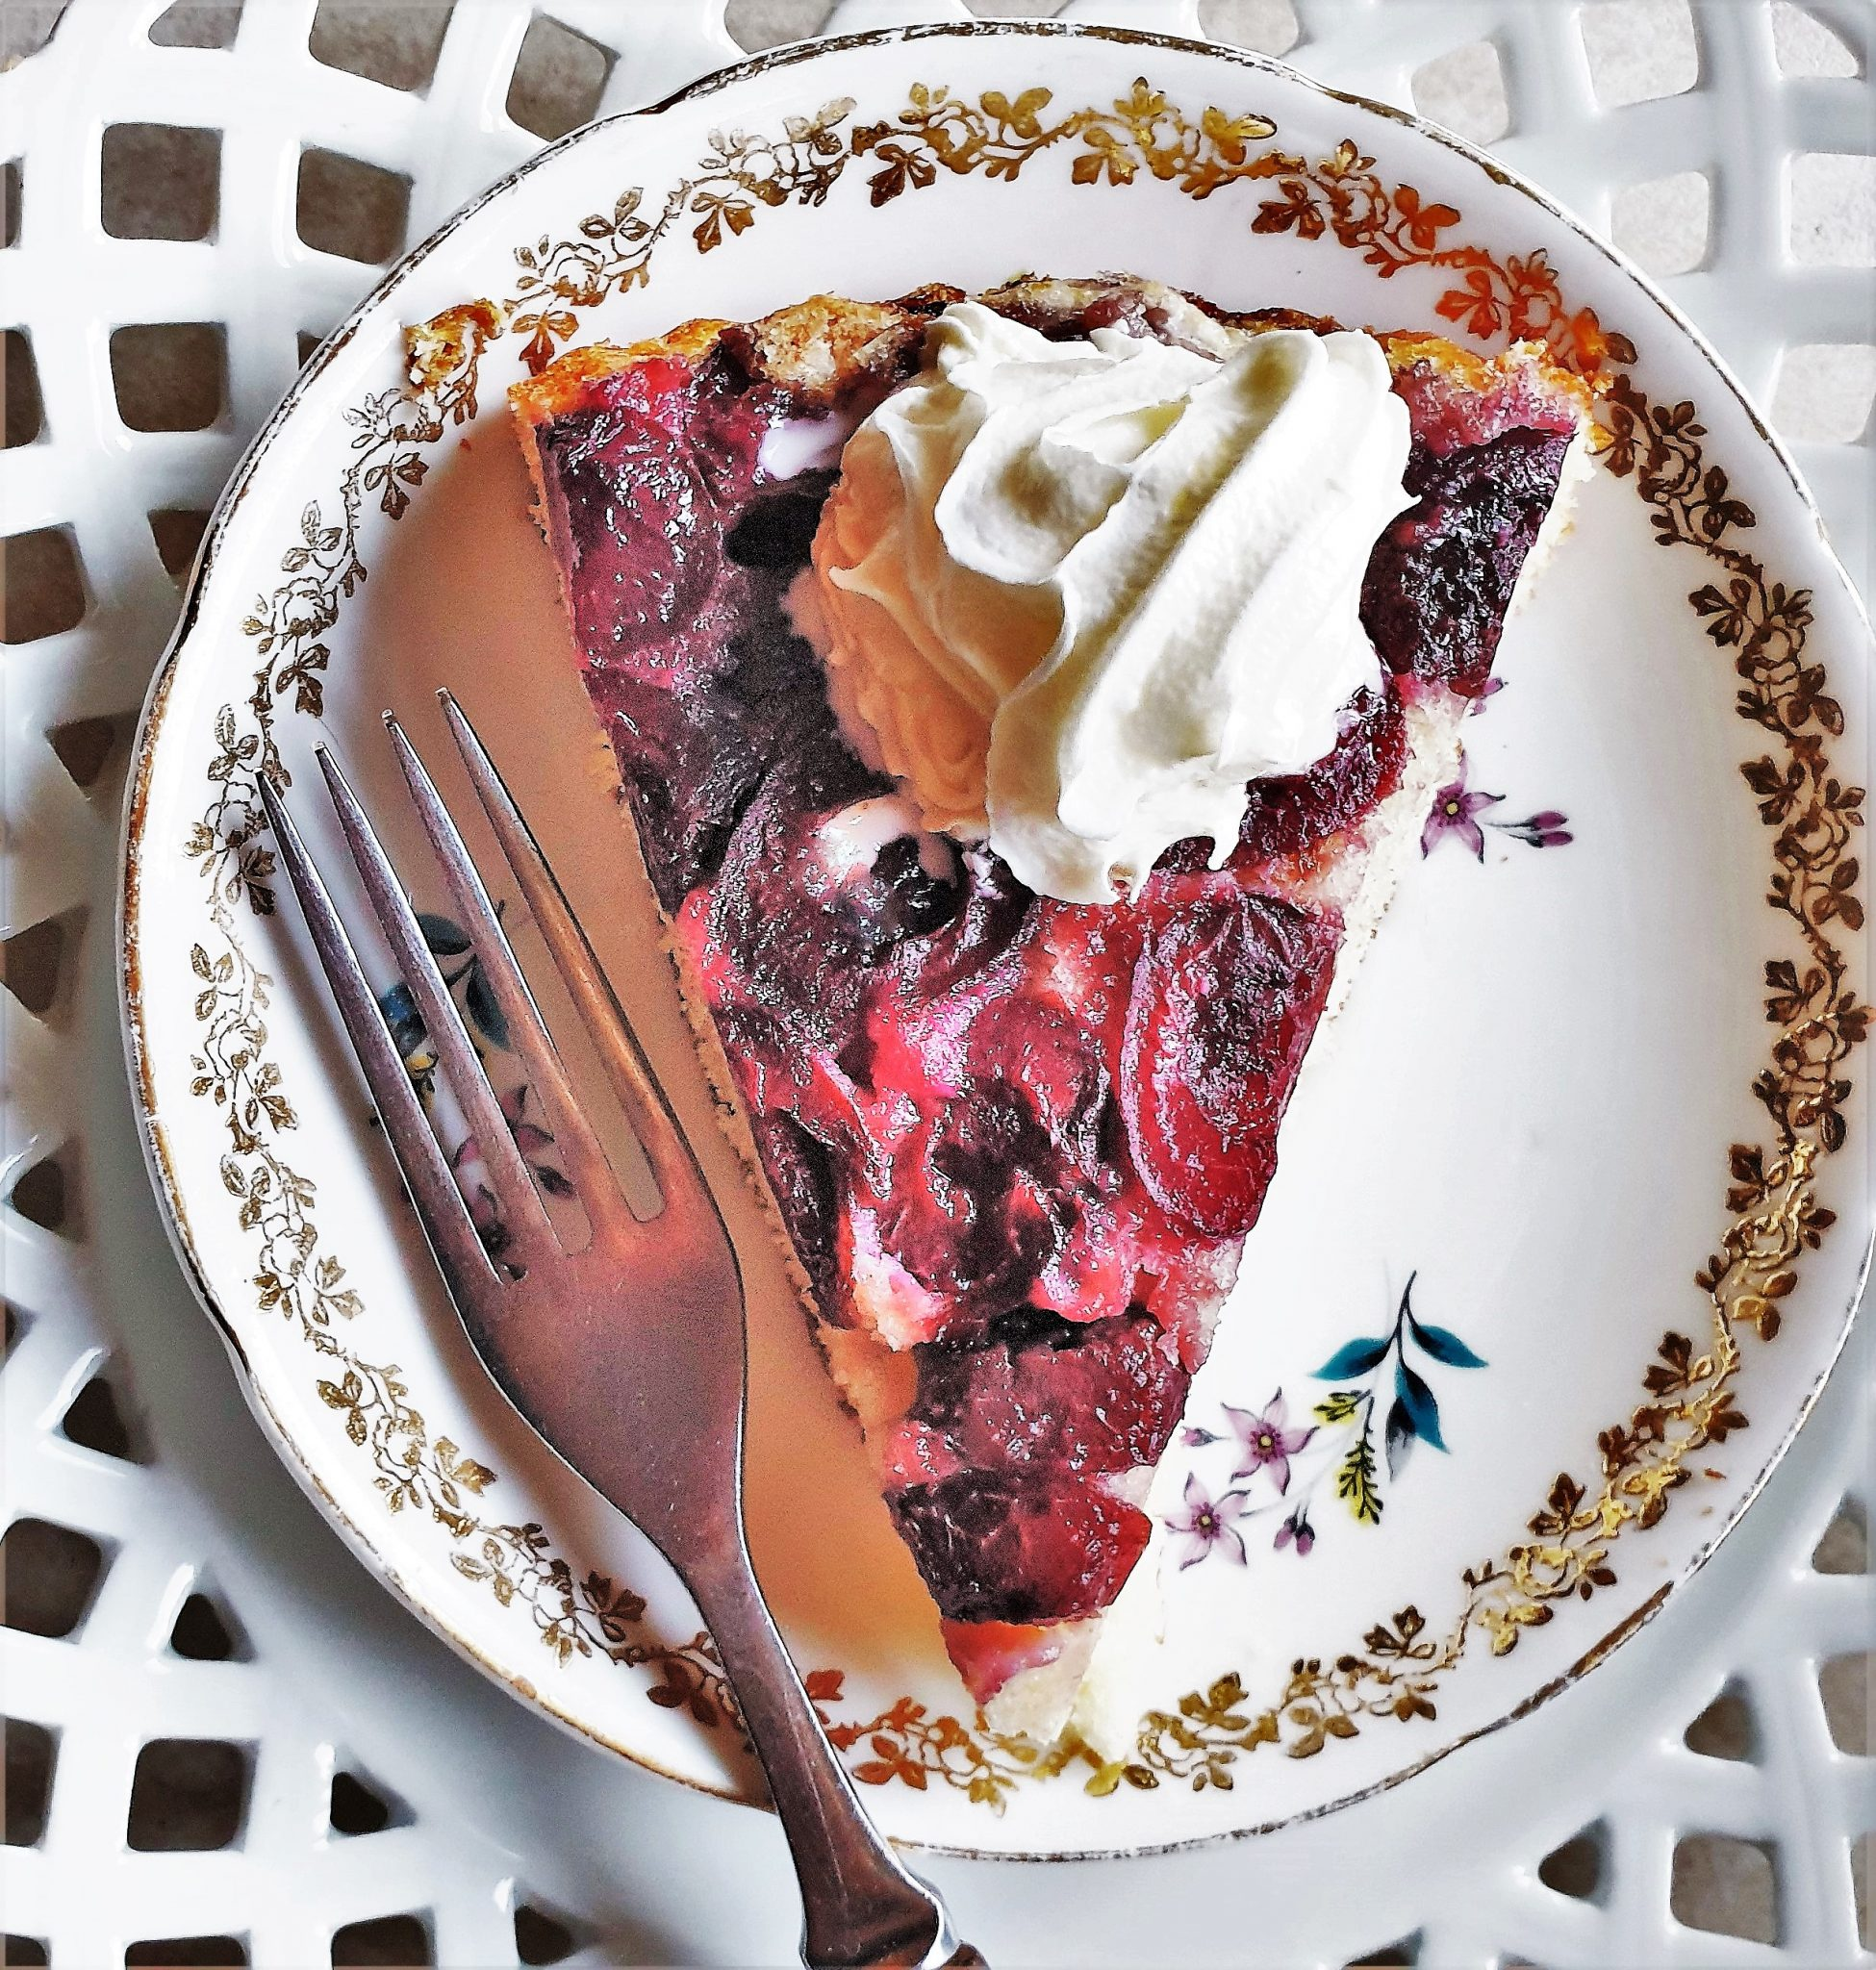 A slice of cherry cake on a plate, topped with whipped cream.